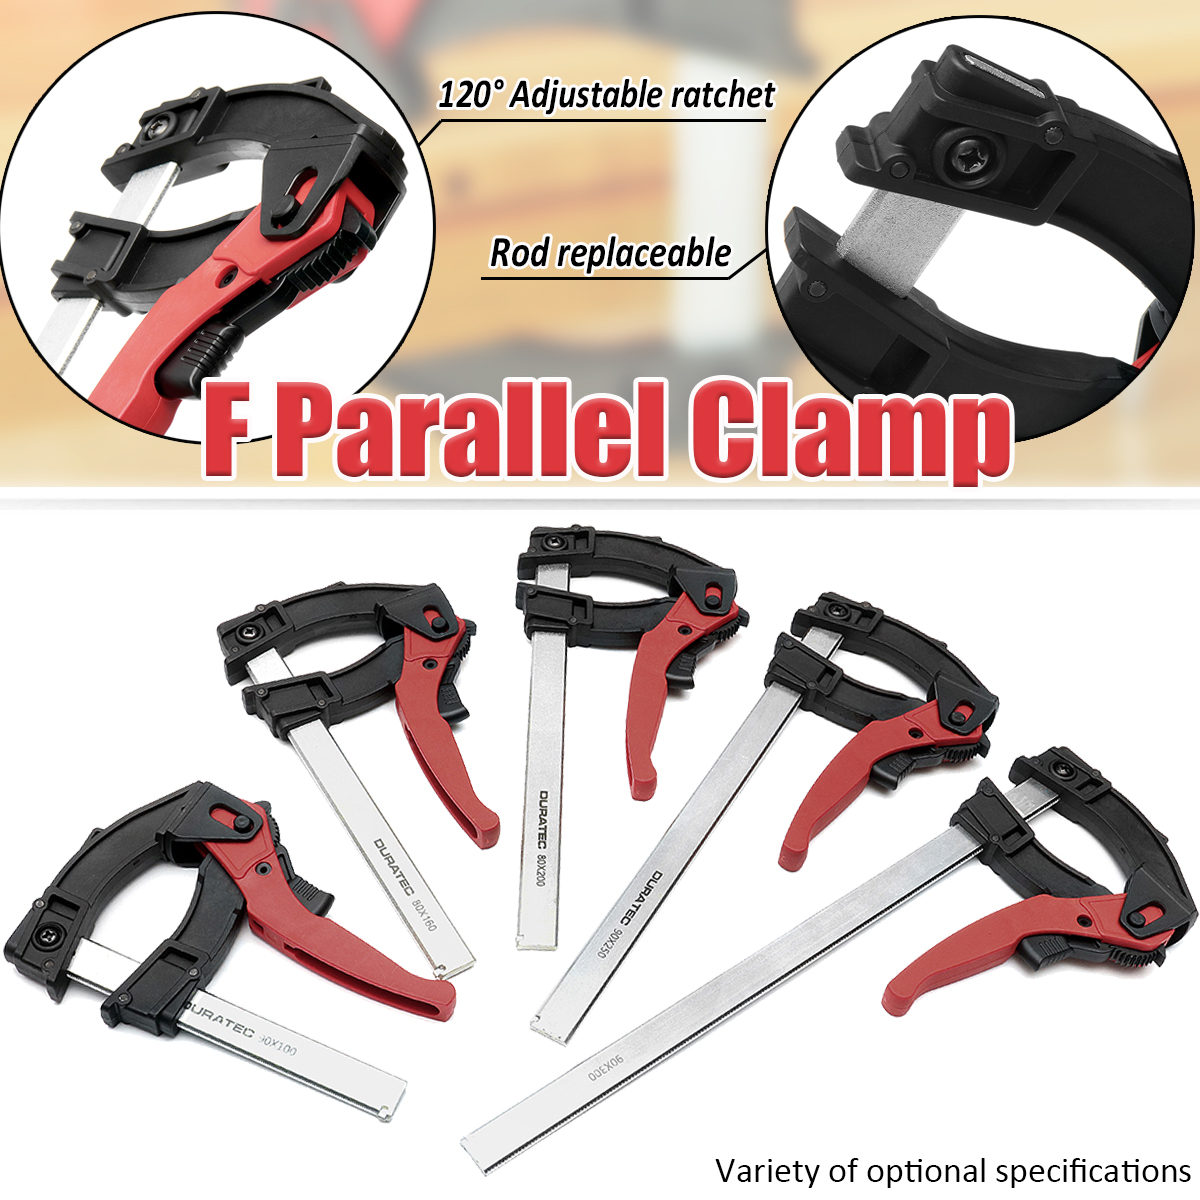 120 Degree Adjustable Quick Grip Clamps Woodworking Heavy   F Clamp 90x 100/160/200/250/300mm DIY Hand Hardware Tool120 Degree Adjustable Quick Grip Clamps Woodworking Heavy   F Clamp 90x 100/160/200/250/300mm DIY Hand Hardware Tool